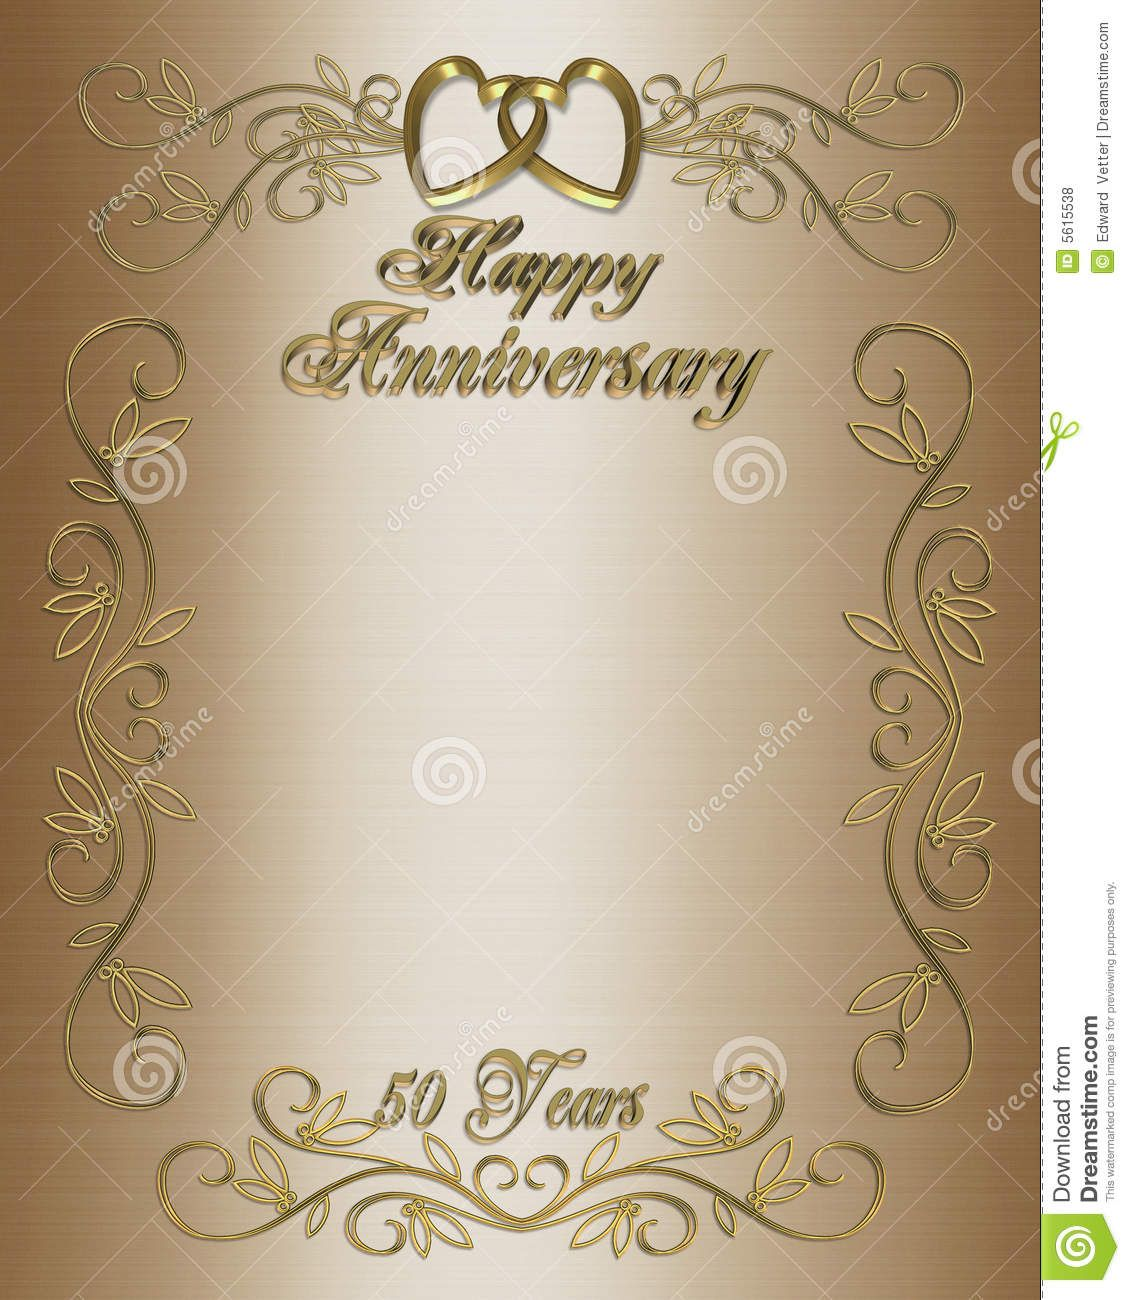 50th wedding anniversary layouts 50th anniversary invitation 50th anniversary invitation border stock illustration illustration of digital greeting 5615538 stopboris Image collections